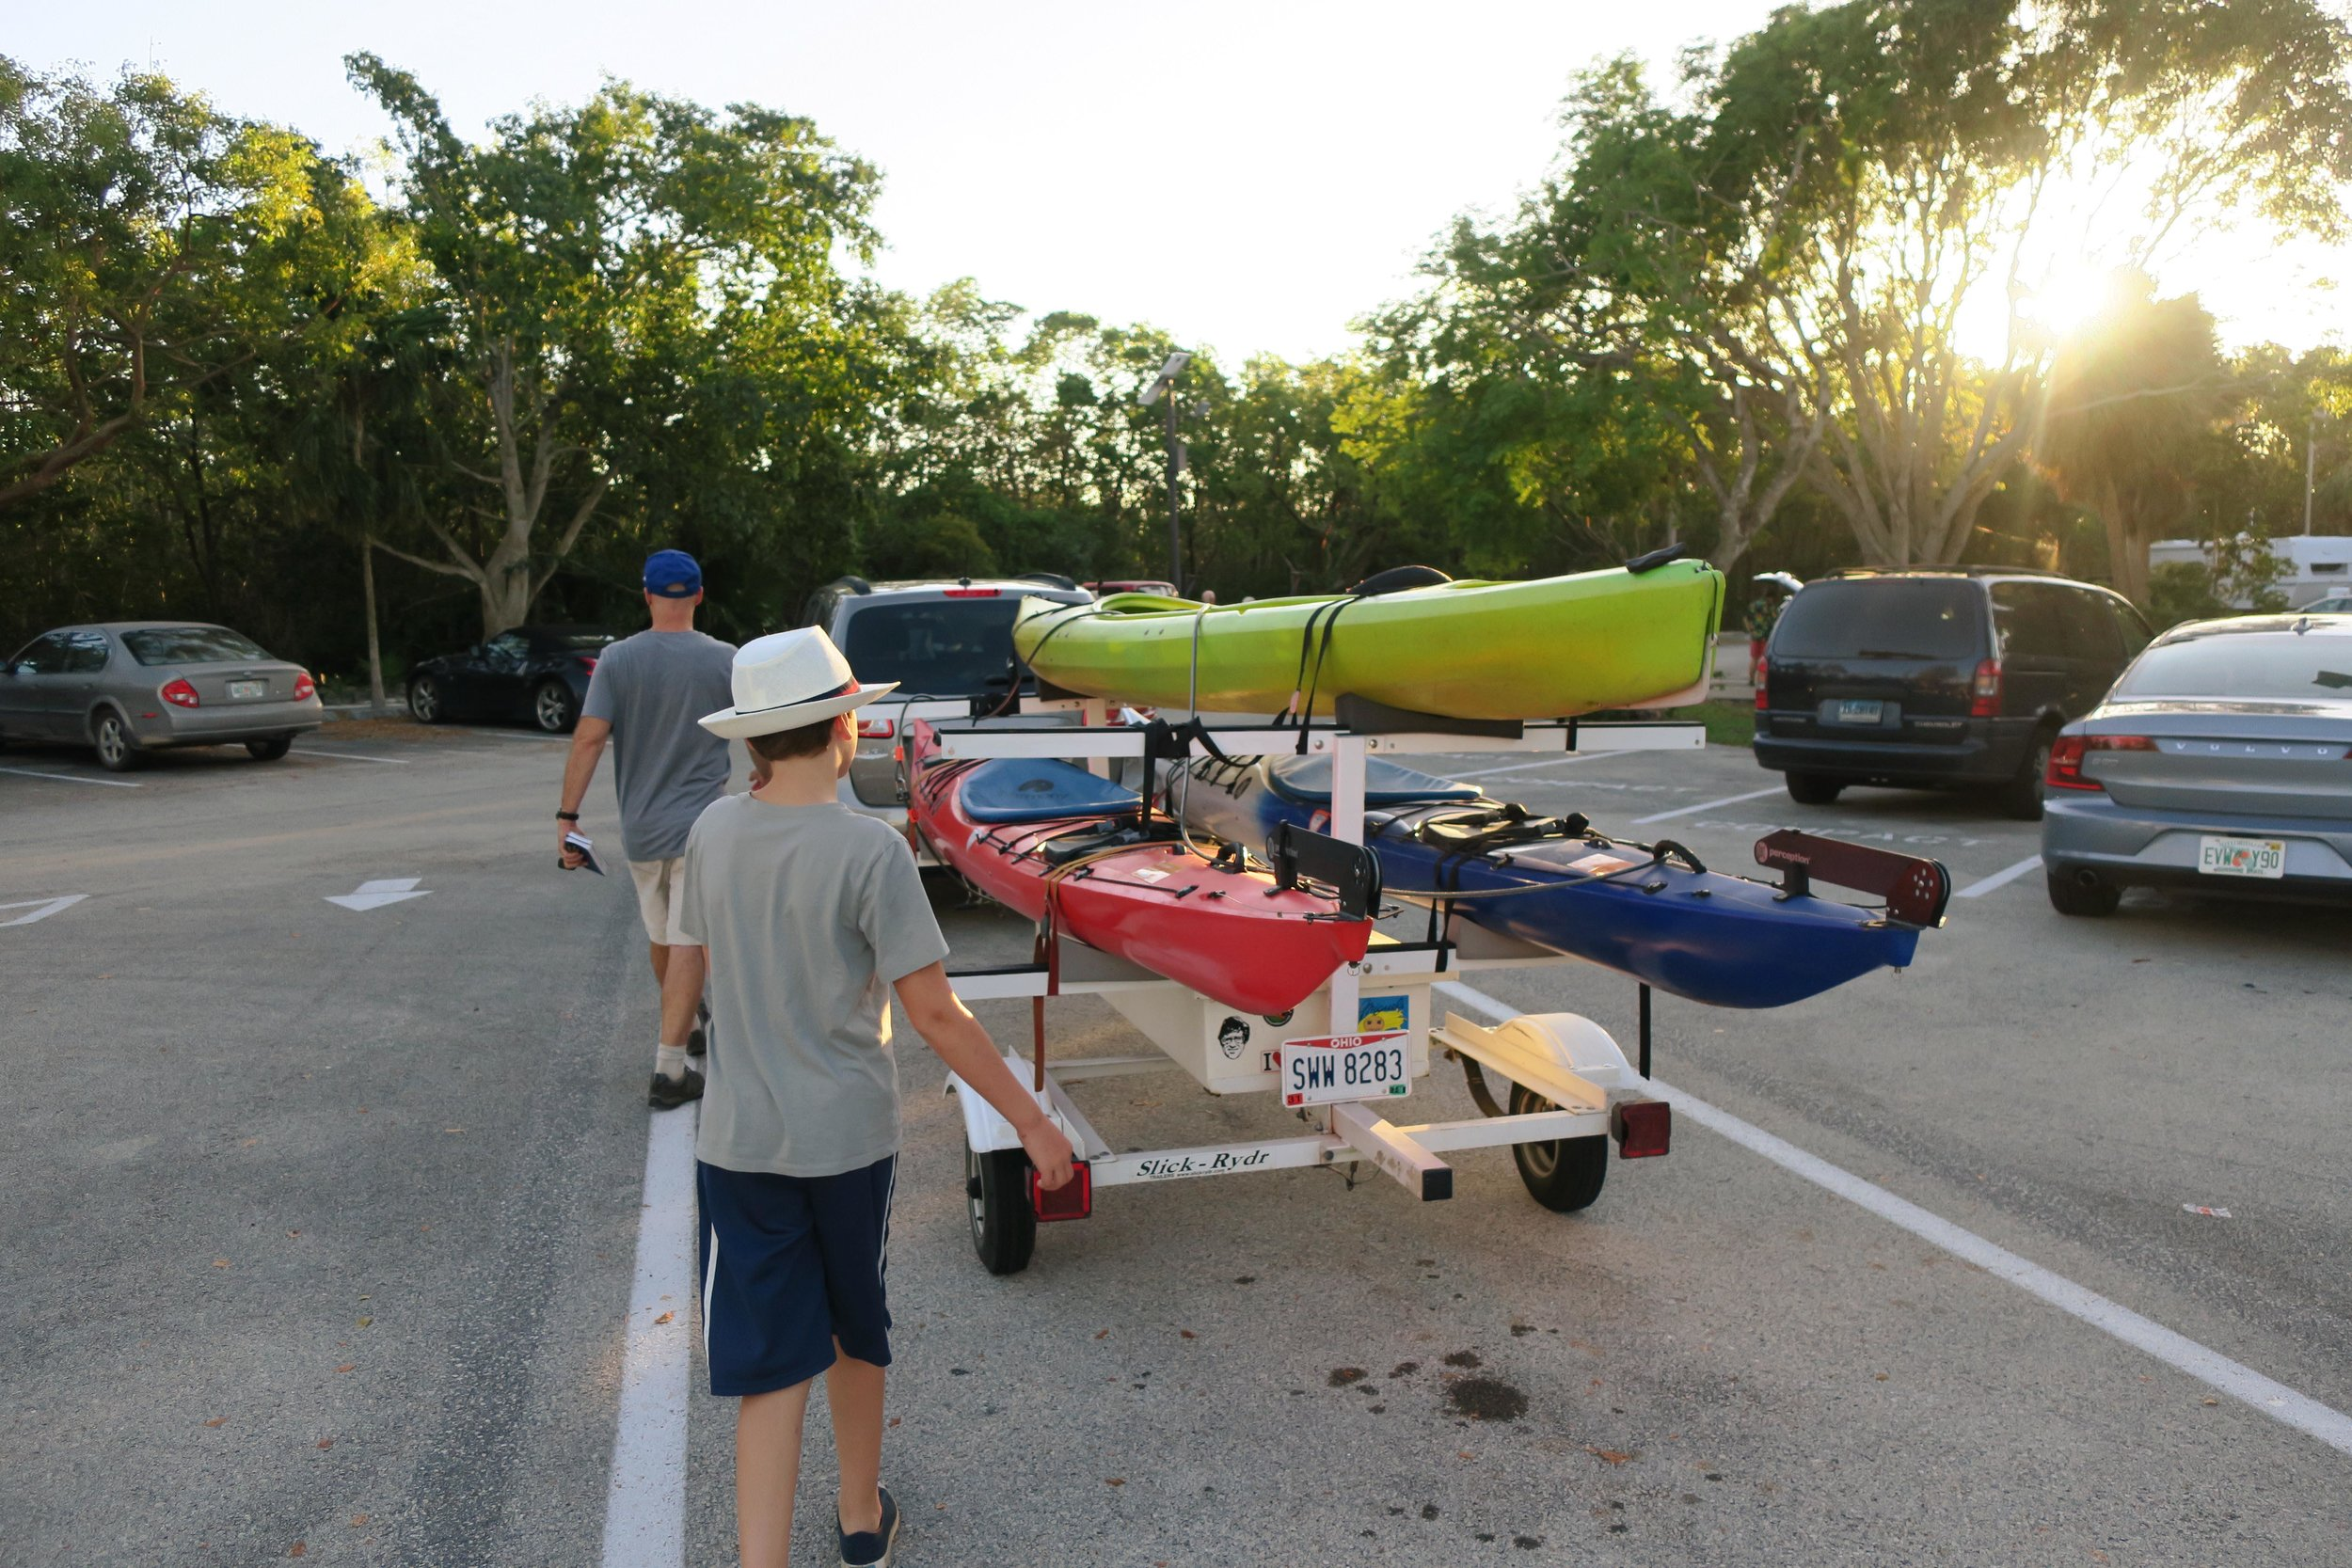 my pretty kayaks and trailer haha